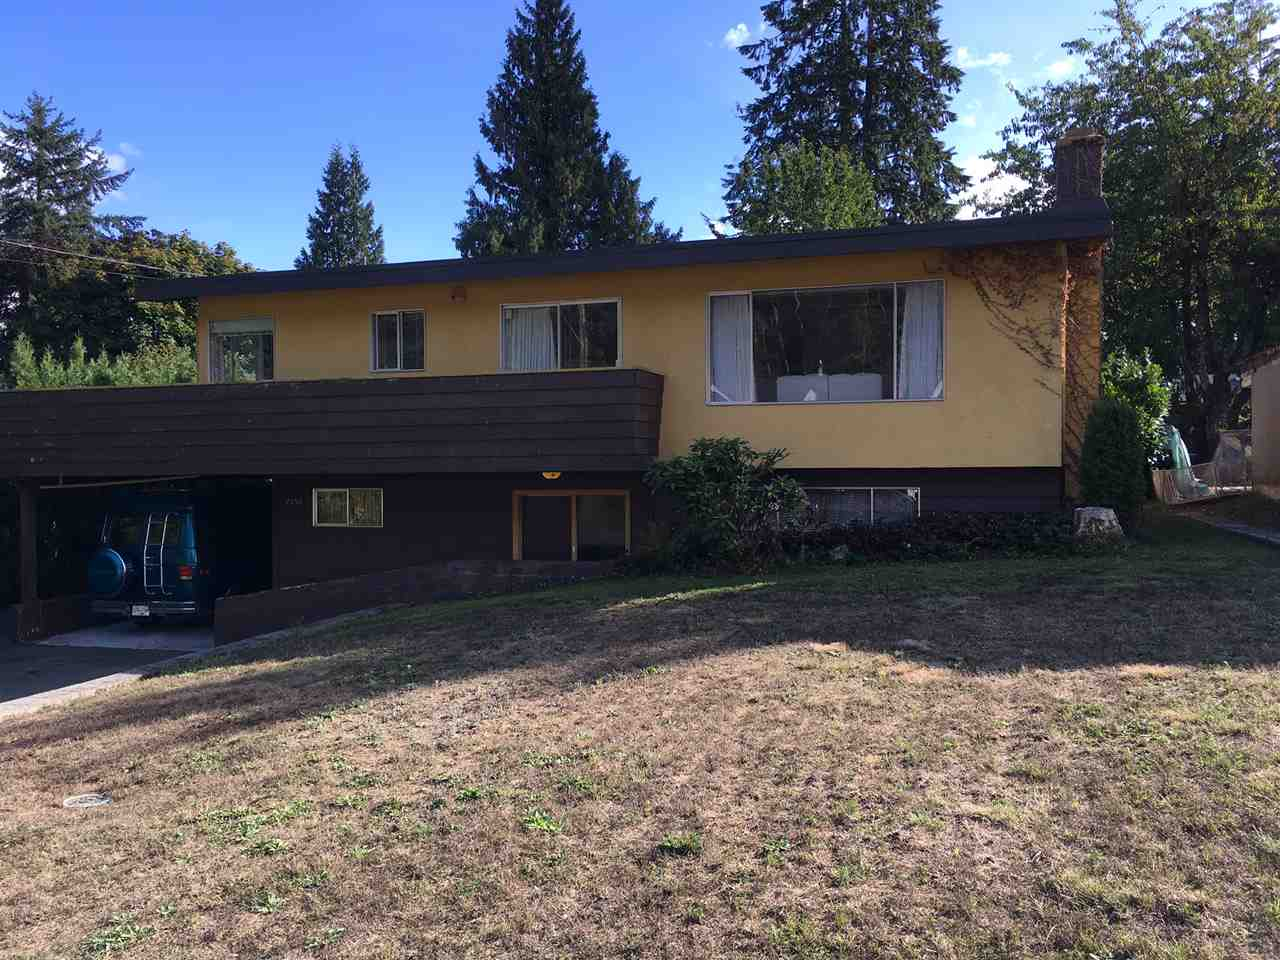 Huge lot on one of Coquitlam's most desirable areas of Mundy Park. 3 Bdrm family home with unfinished bsmt awaiting your ideas, could be suited, in need on some TLC. Hardwood under carpets on the main floor. Newer furnace, roof, kitchen and H/W tank.